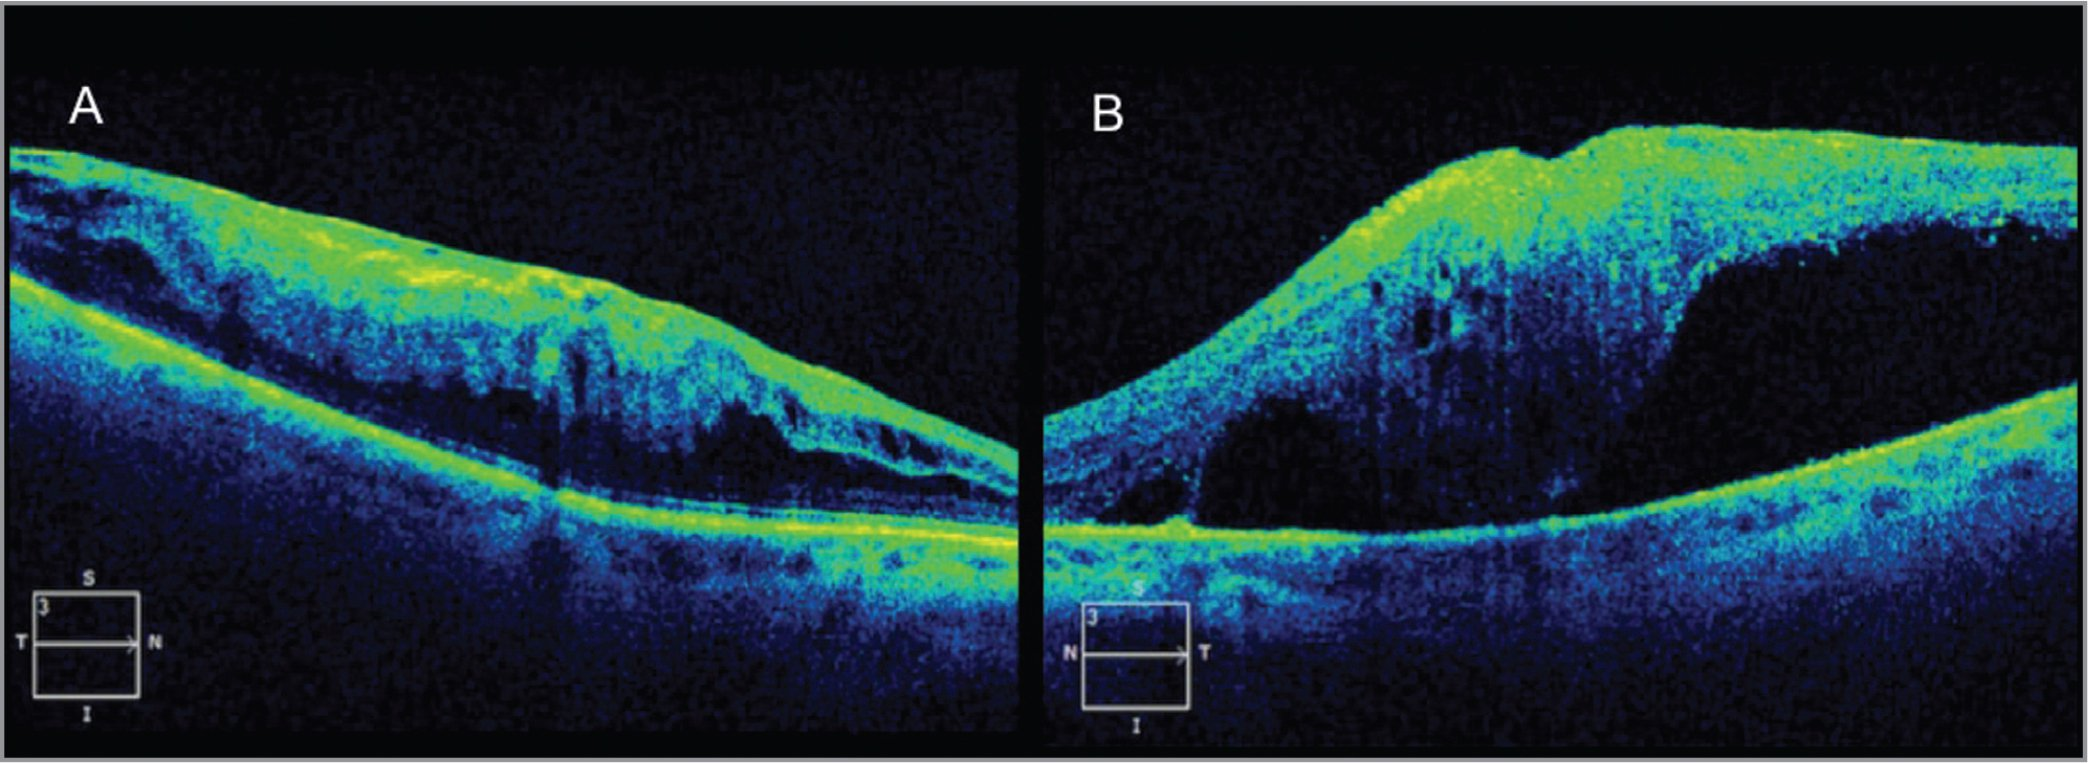 "At last follow-up (17 months after autologous ""stem cell"" injections [ASCIs] and 6 months after retinal detachment repair in the left eye), the optical coherence tomography (OCT) of the right eye (A) shows stable appearance of the epiretinal membrane. OCT of the left eye (B) shows that the macula has re-detached."